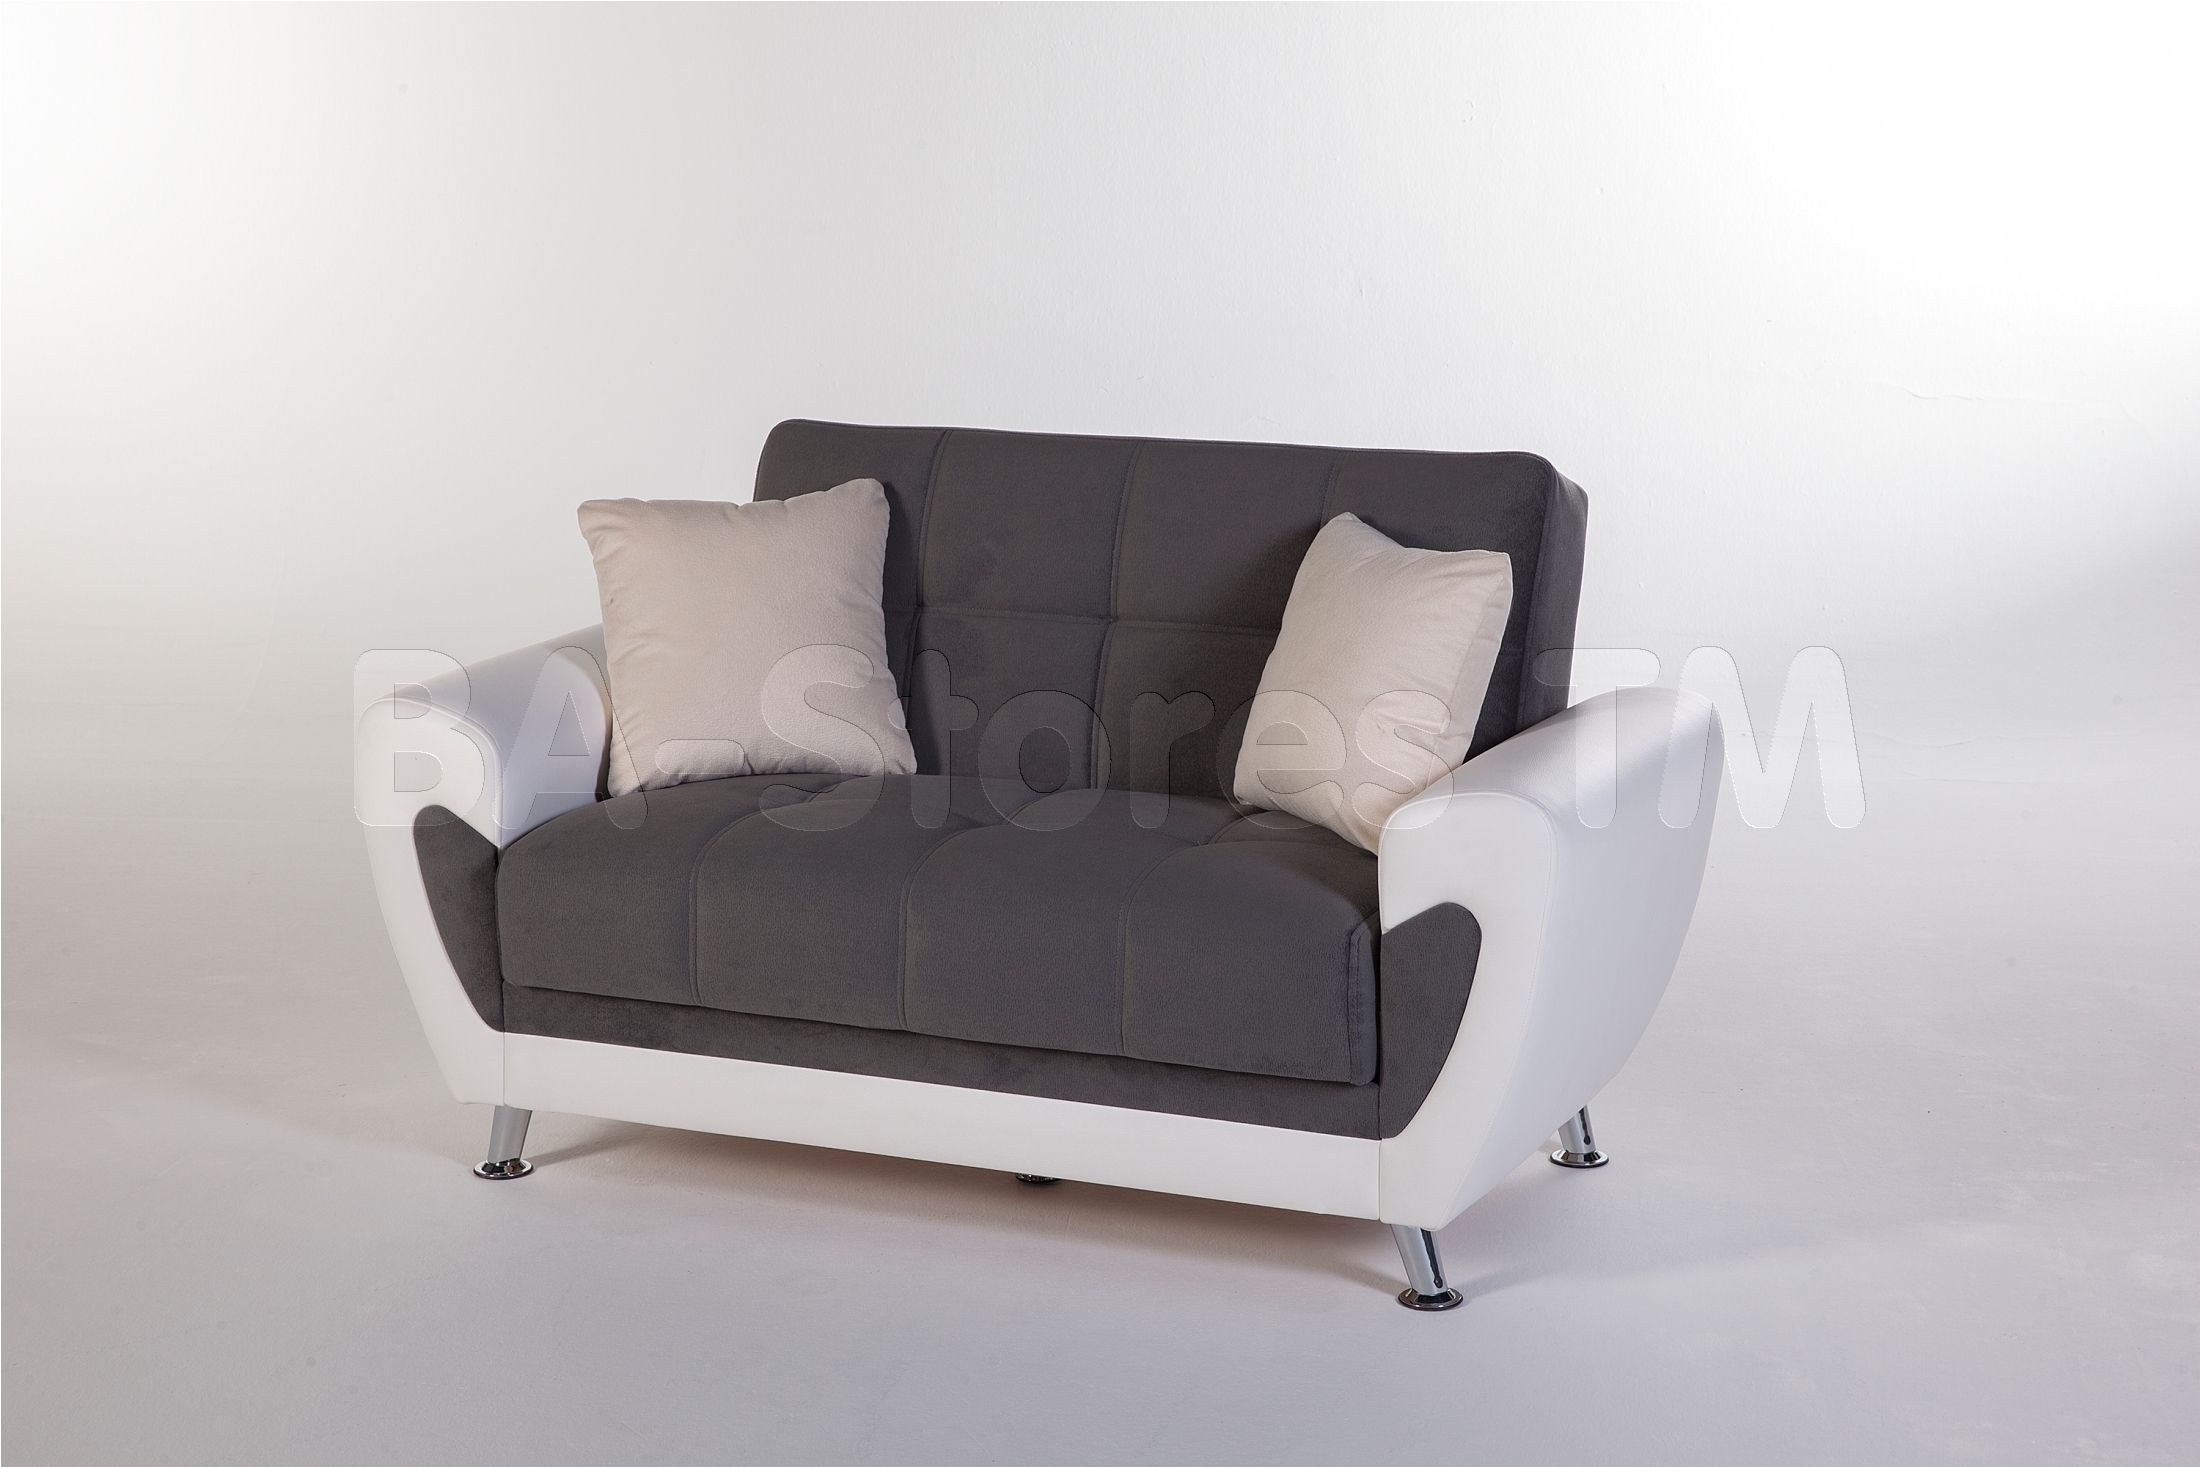 Surprising Duru Loveseat In Plato Dark Gray By Istikbal Loveseats By Pabps2019 Chair Design Images Pabps2019Com